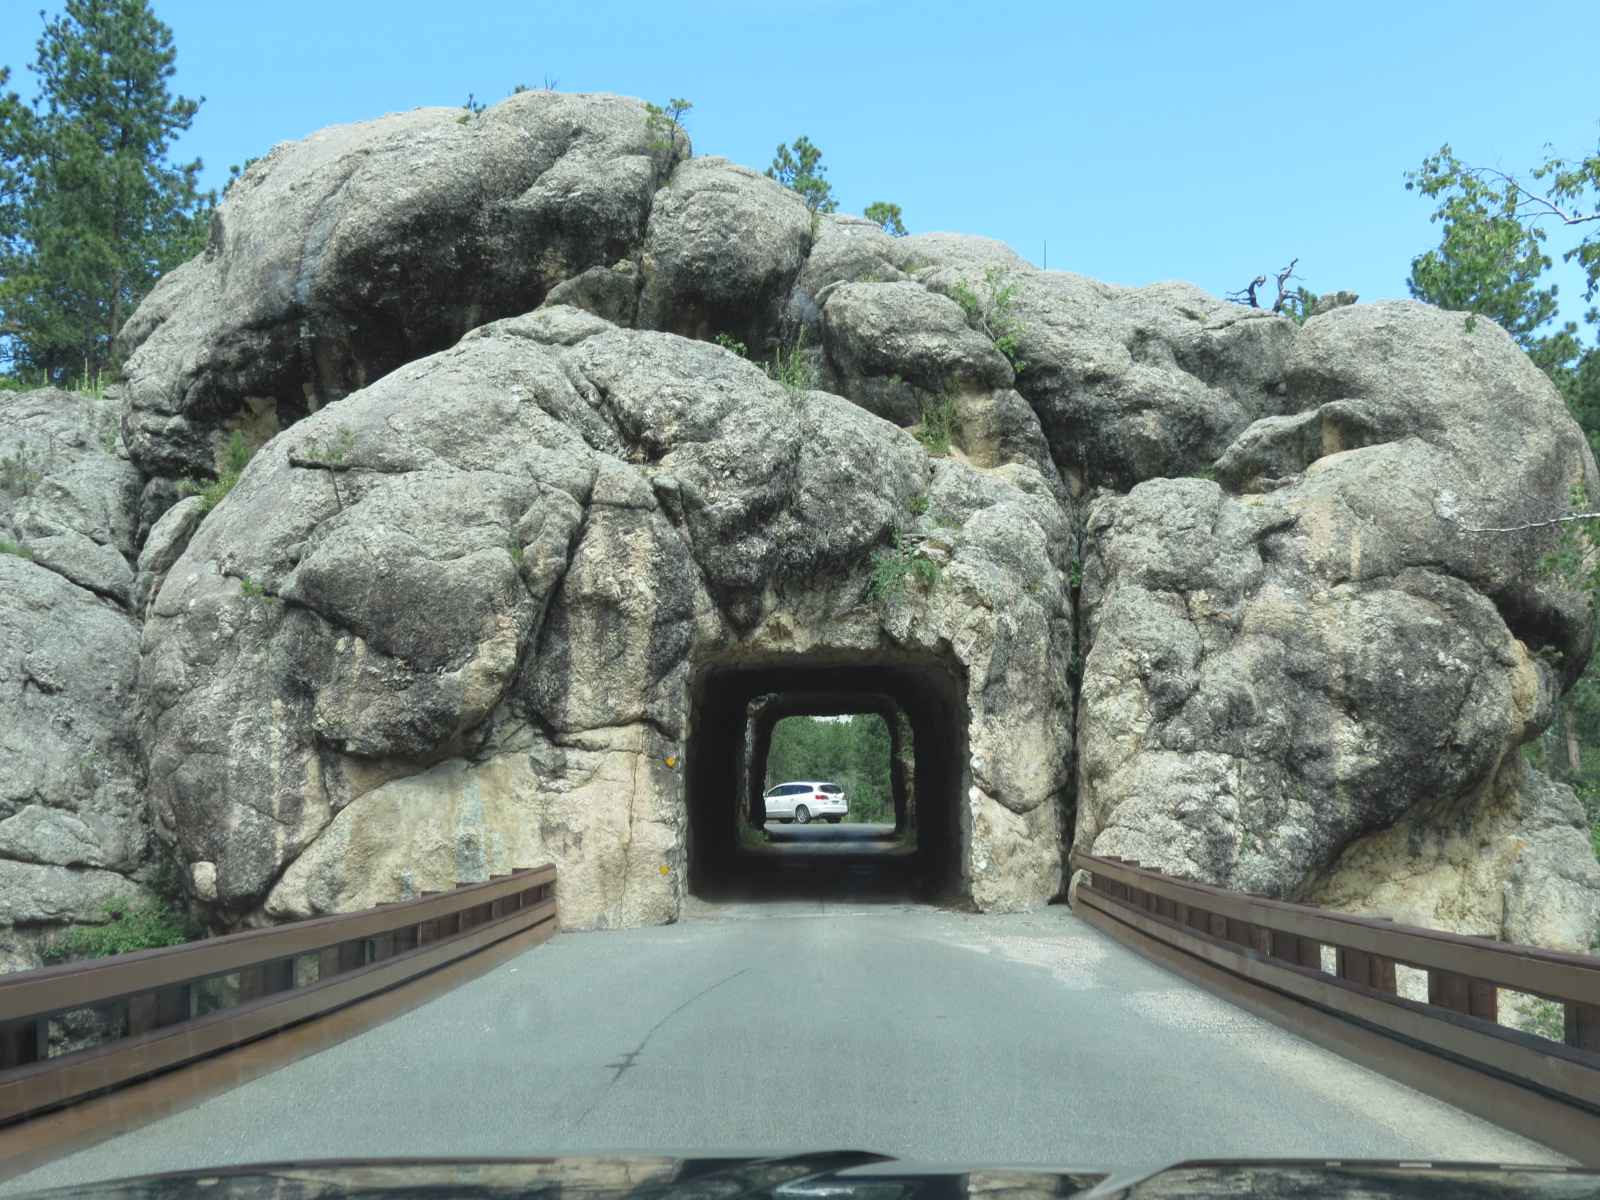 Driving through tunnel in Custer State Park, SD